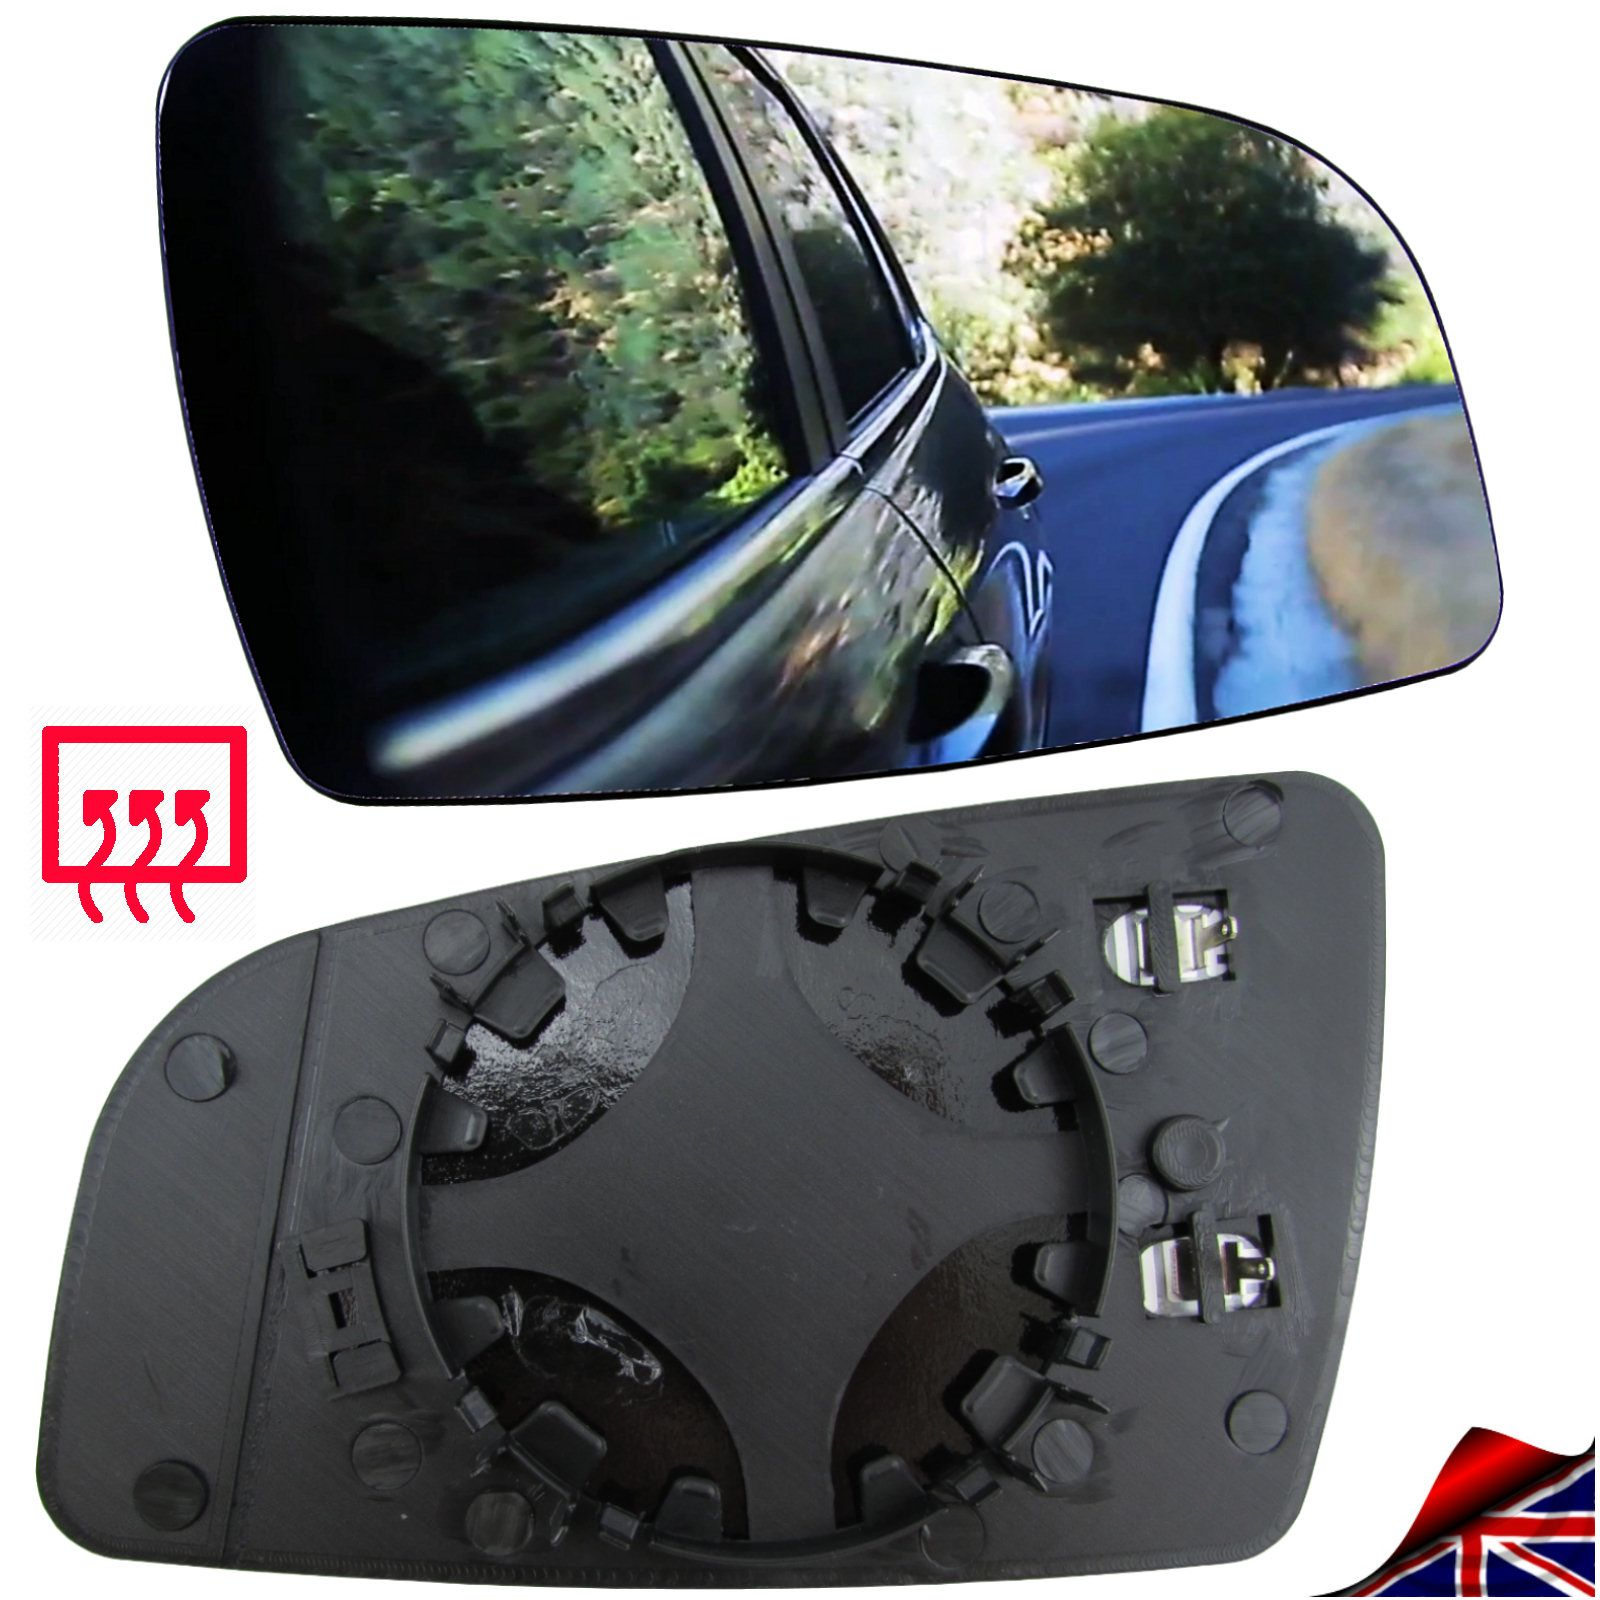 Driver Side Silver Aspheric Door//Wing Mirror Glass Including Base Plate RH VUXHL-Astra 2004 to 2009 Heated